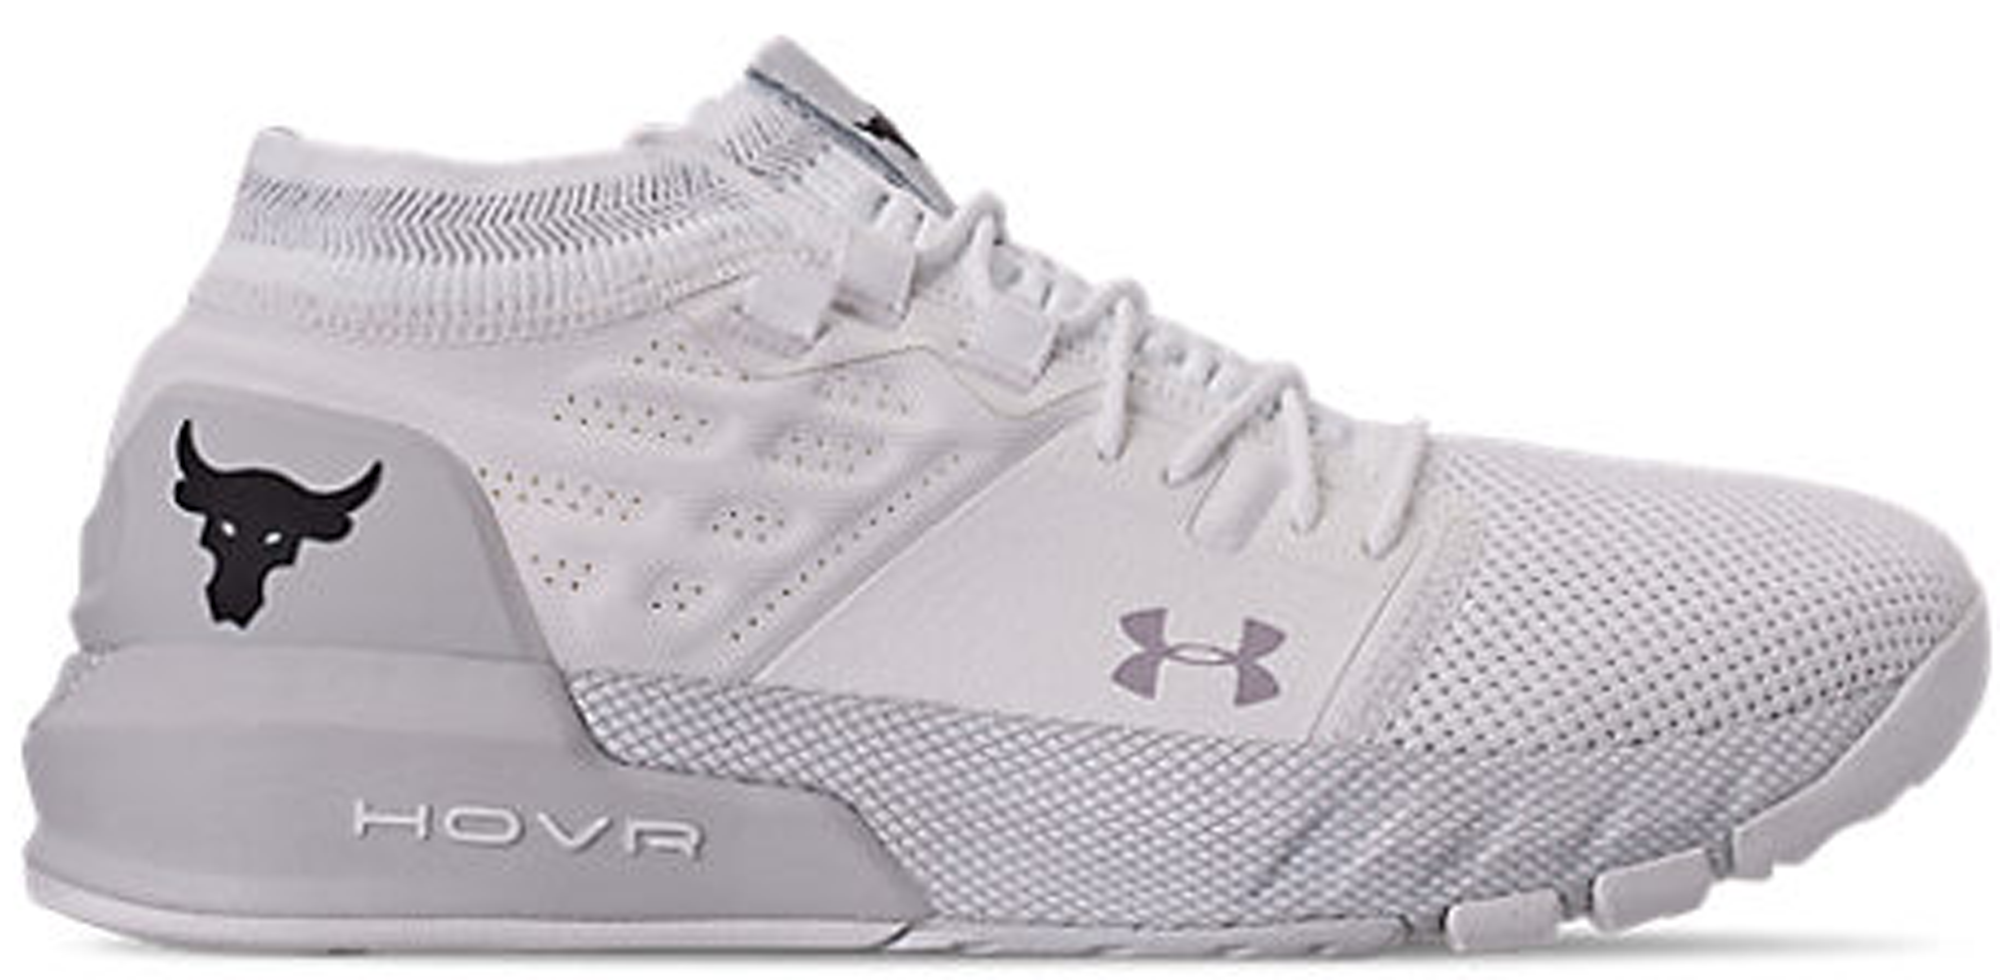 Under Armour Project Rock 2 White Black